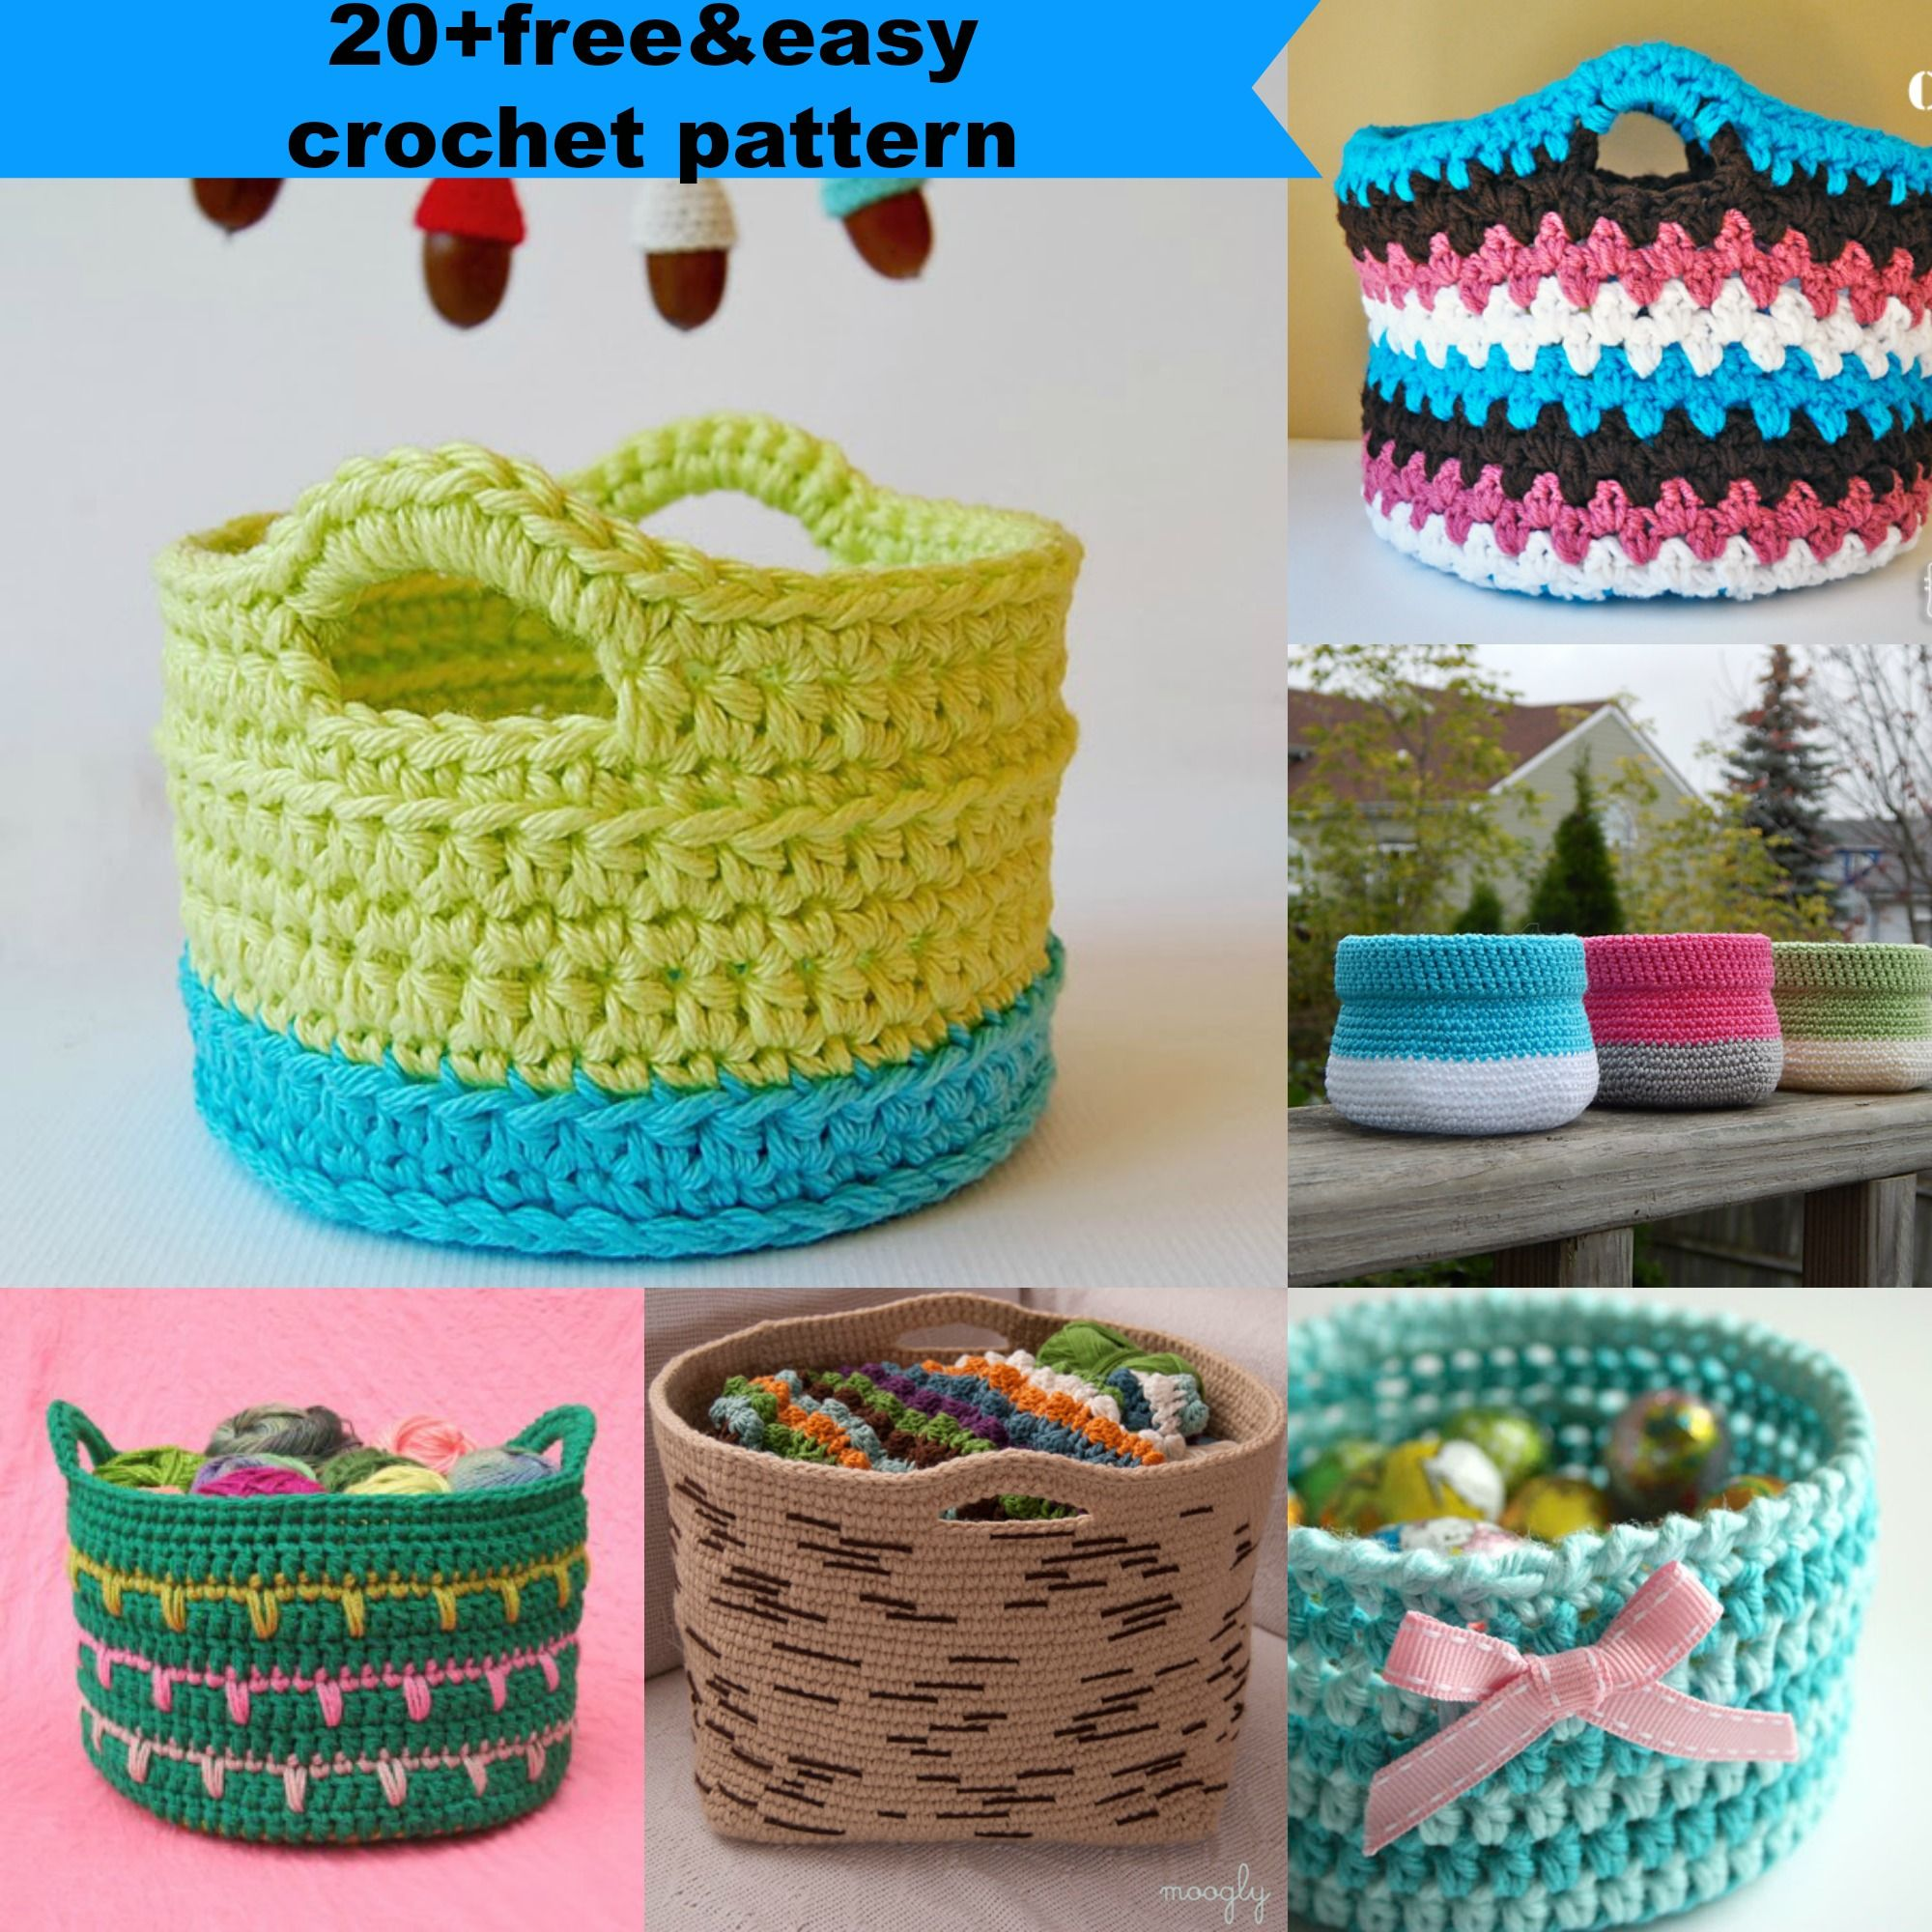 20+free&easy crochet pattern by jennyandteddy | Proyectos que ...